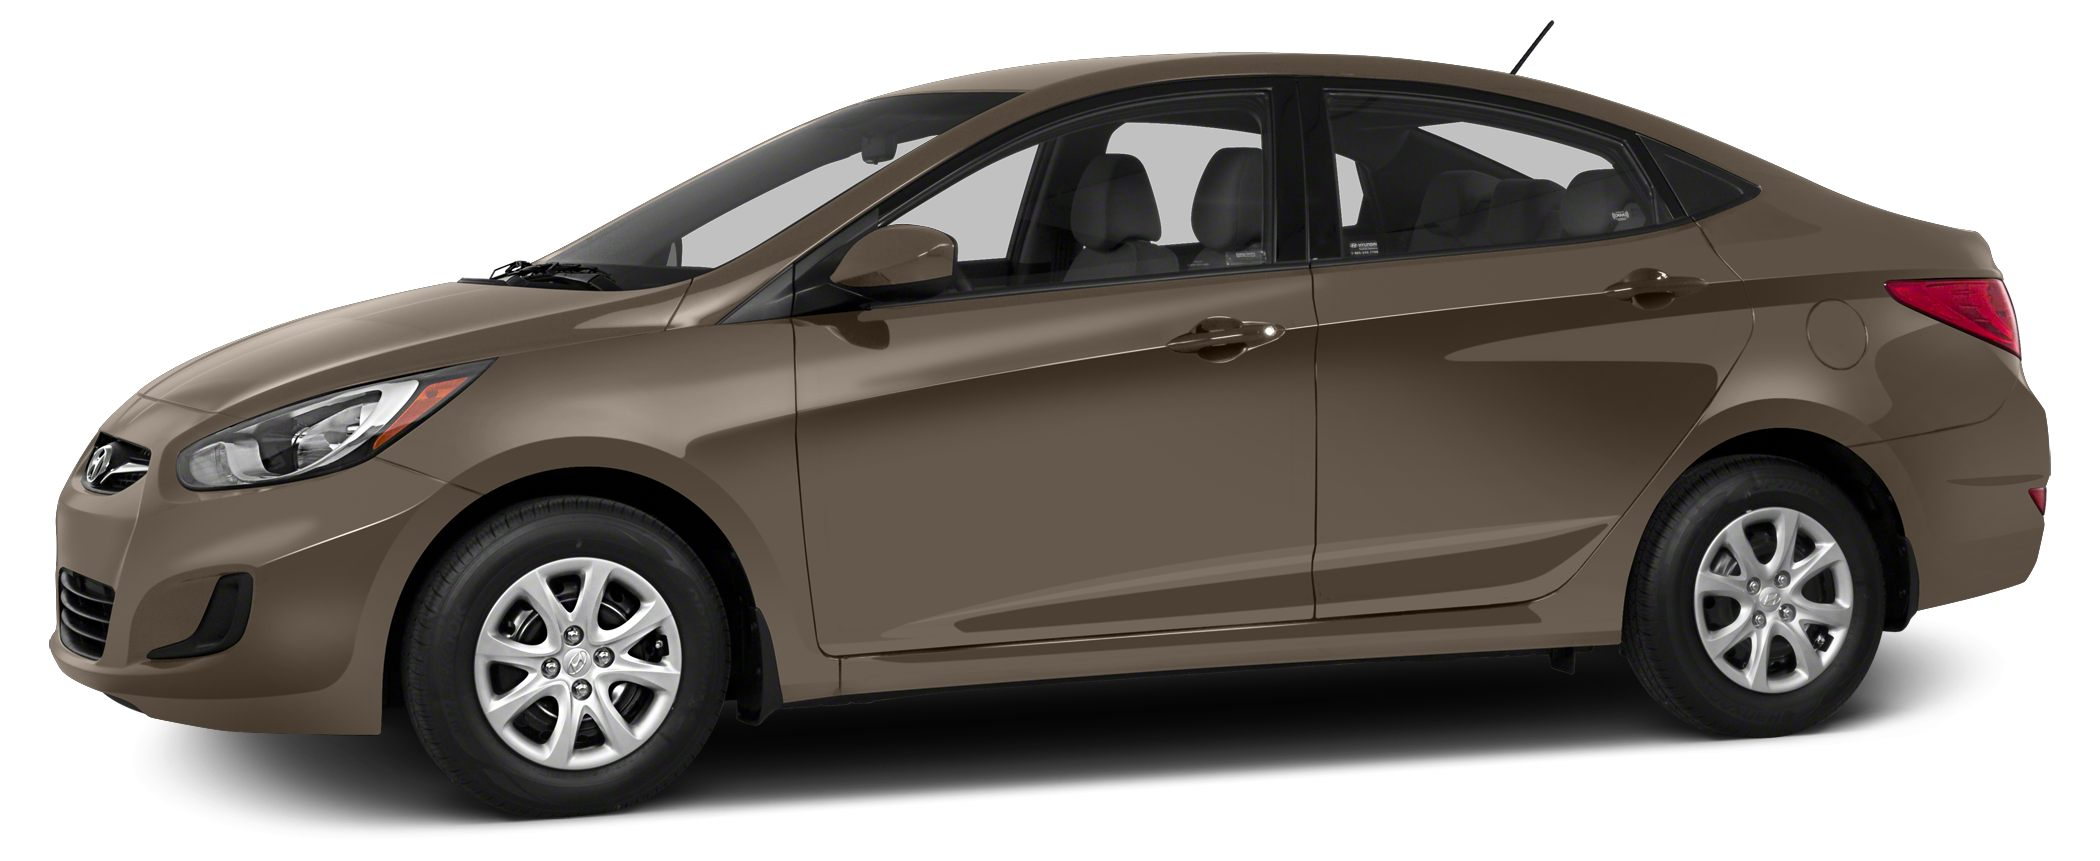 2013 Hyundai Accent GLS For more information about this vehicleplease contact Teresa in the Intern